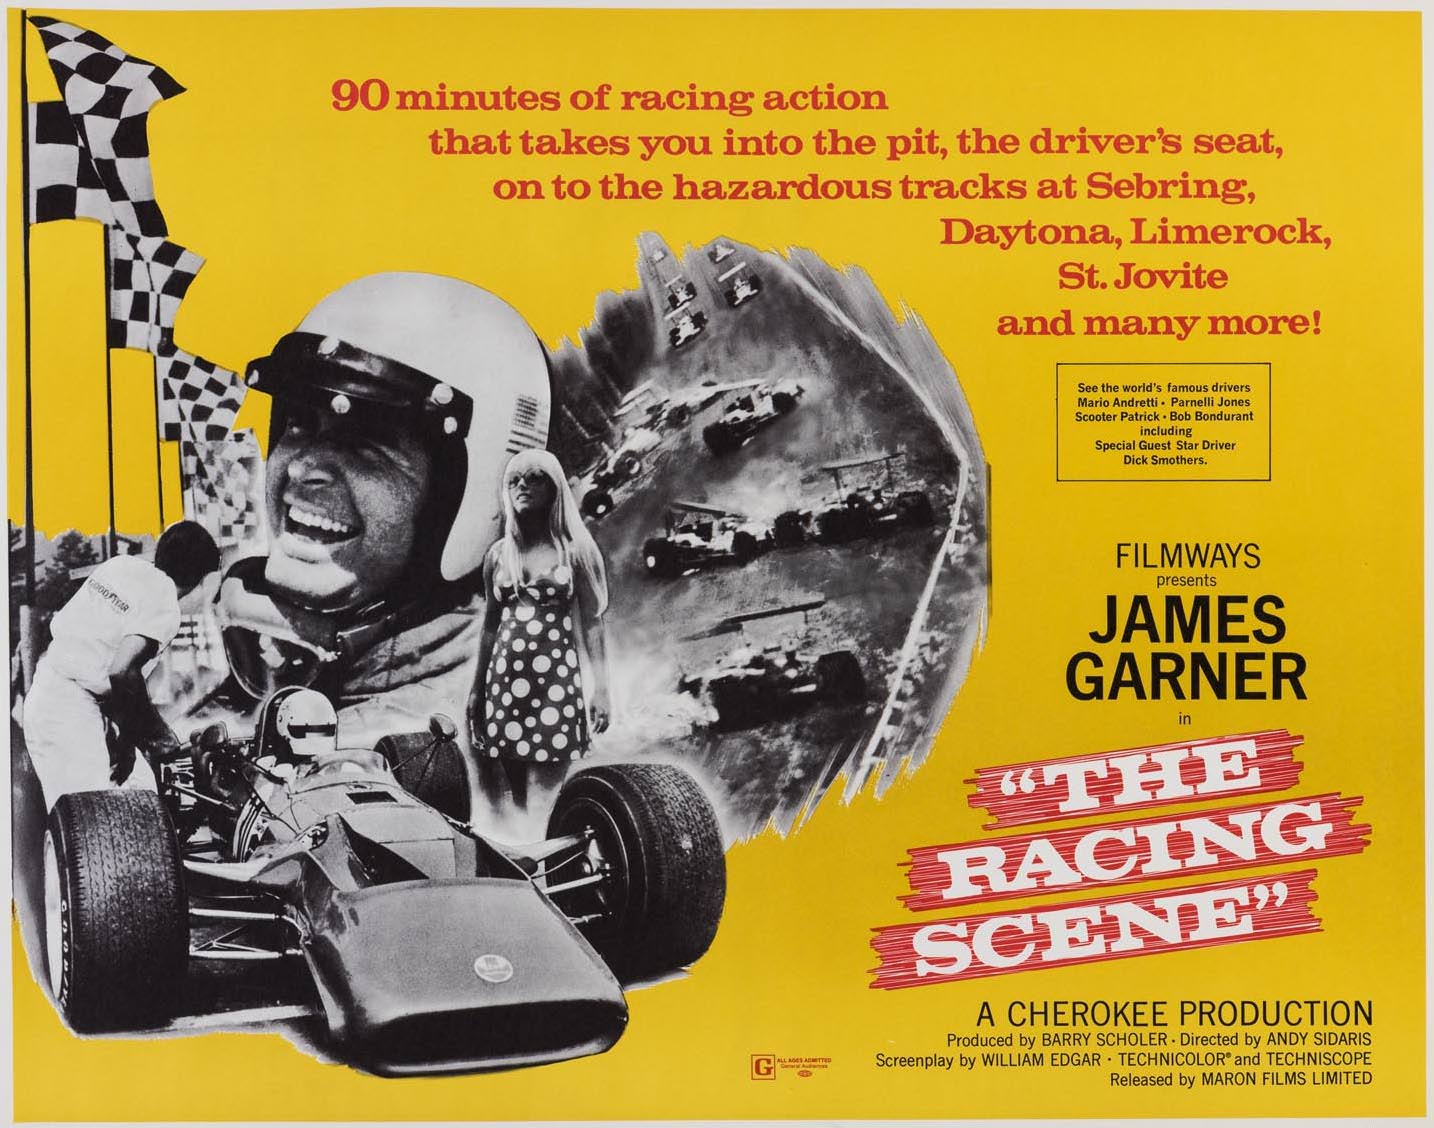 Free Documentary: The Racing Scene - Featuring James Garner